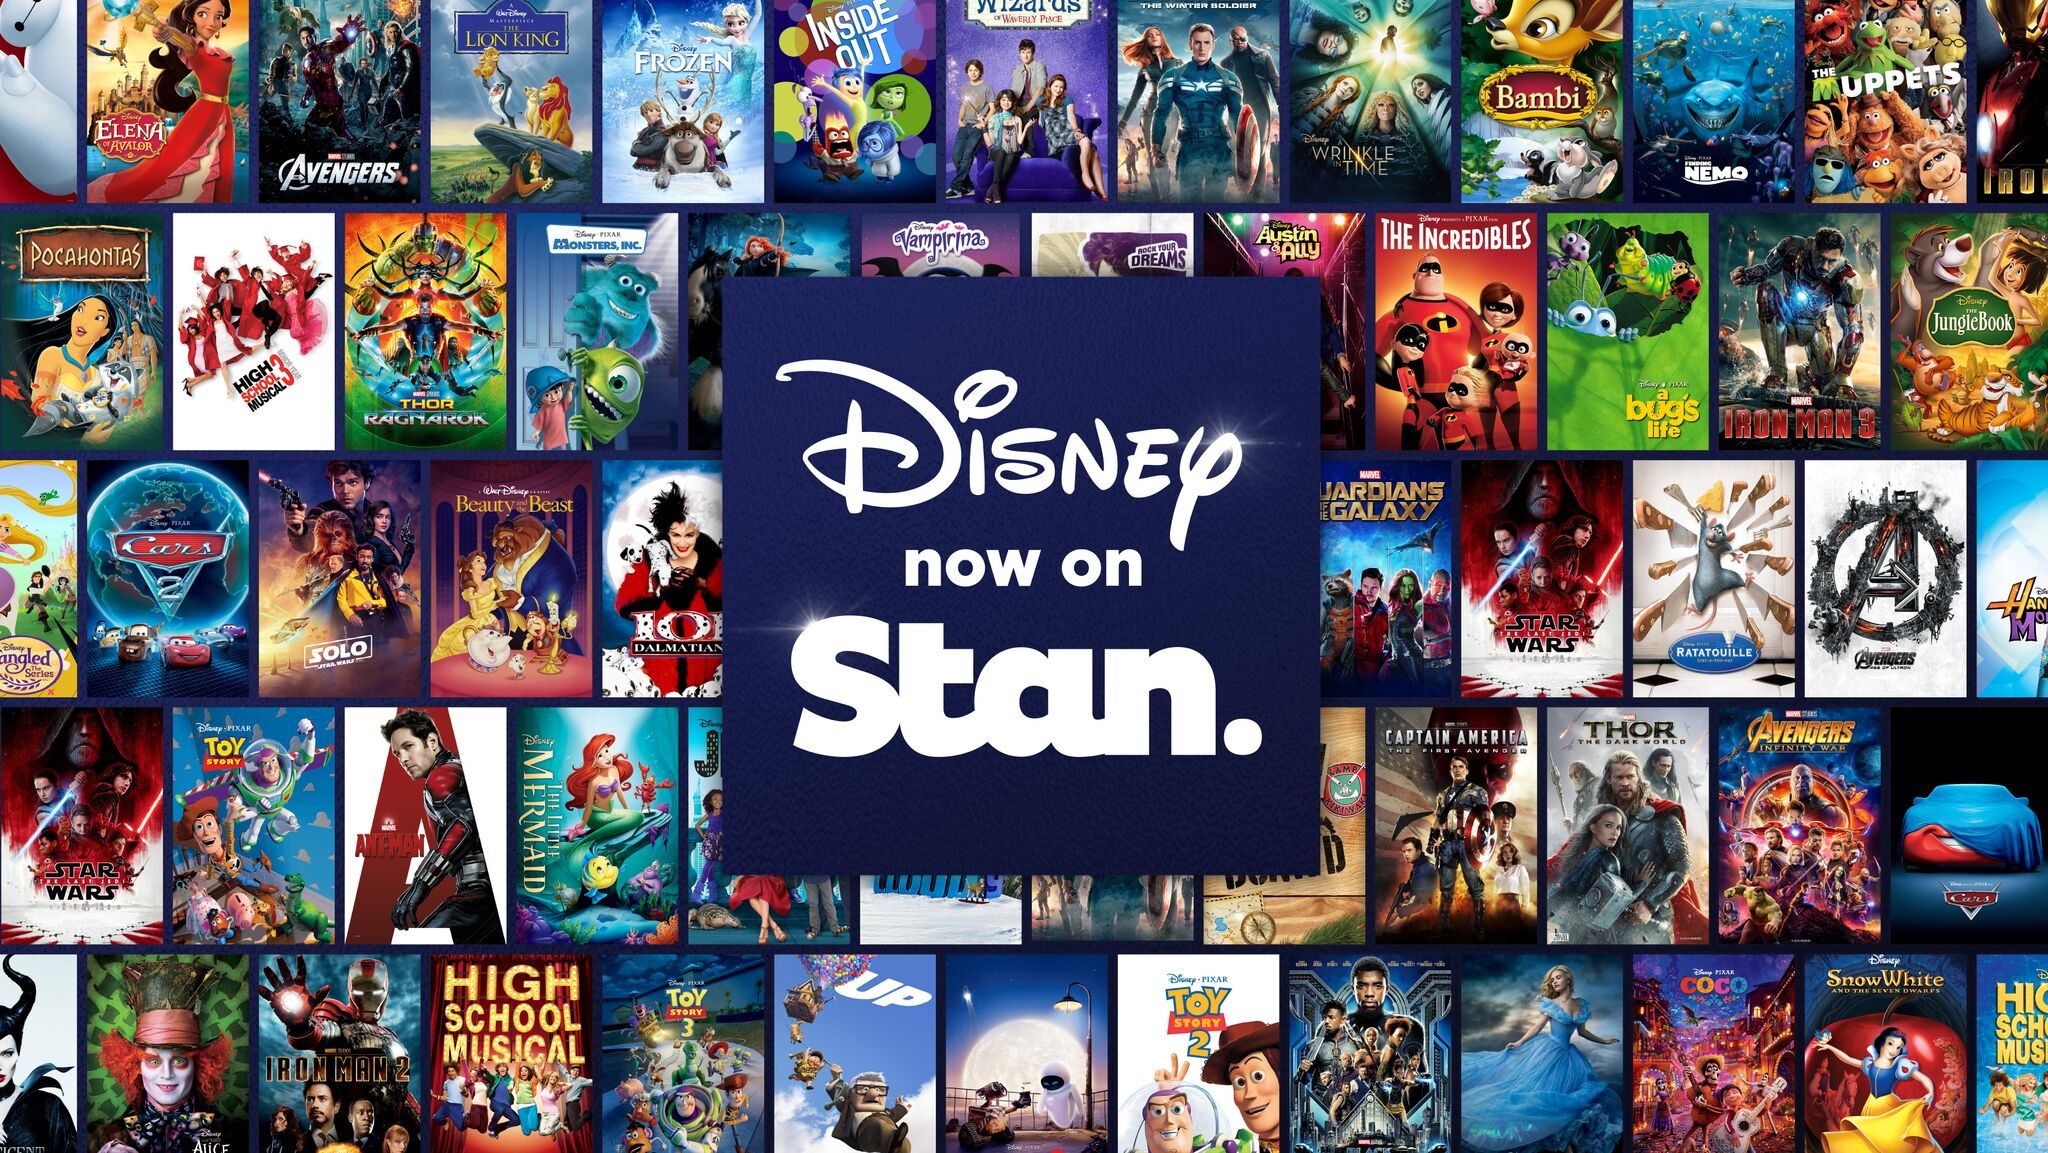 Stan is Disney's new home for streaming content in Australia | TechRadar